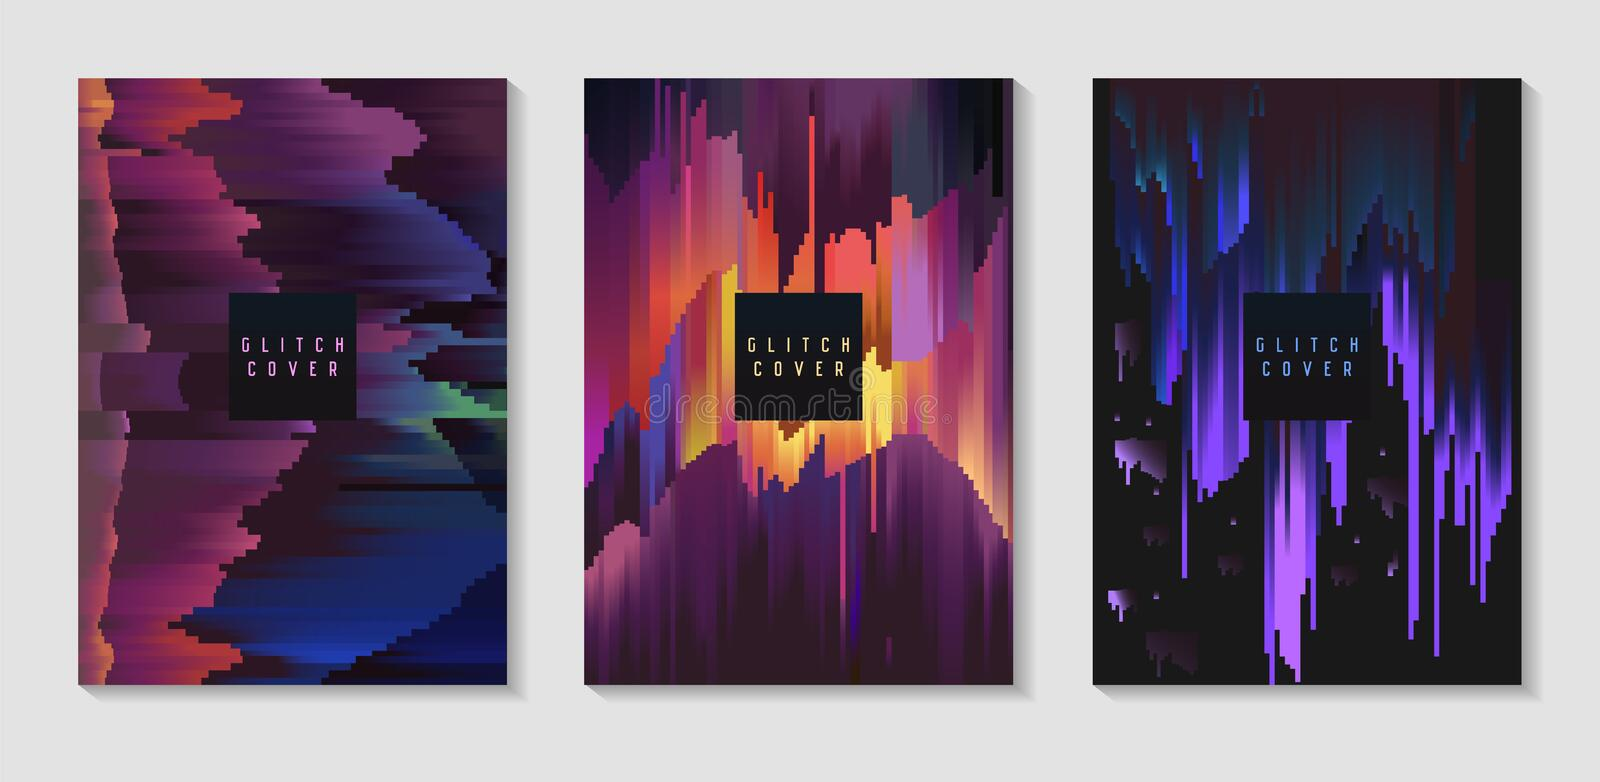 Abstract Design Set in Glitch Style. Trendy Background Templates with Geometric Shapes for Posters, Covers royalty free illustration